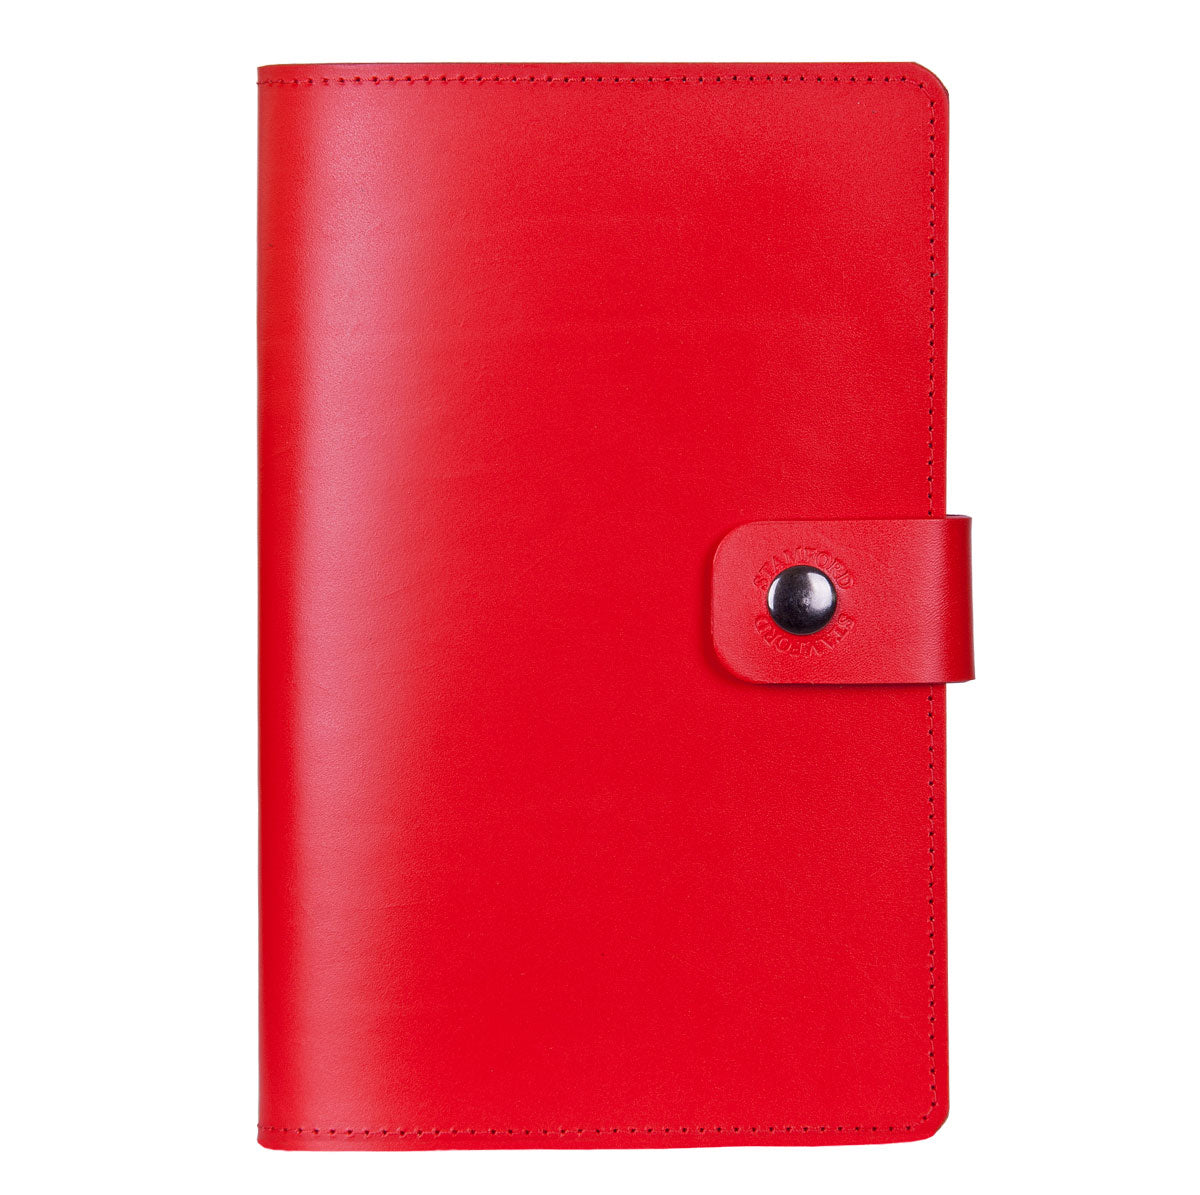 Red Burghley refillable leather journal